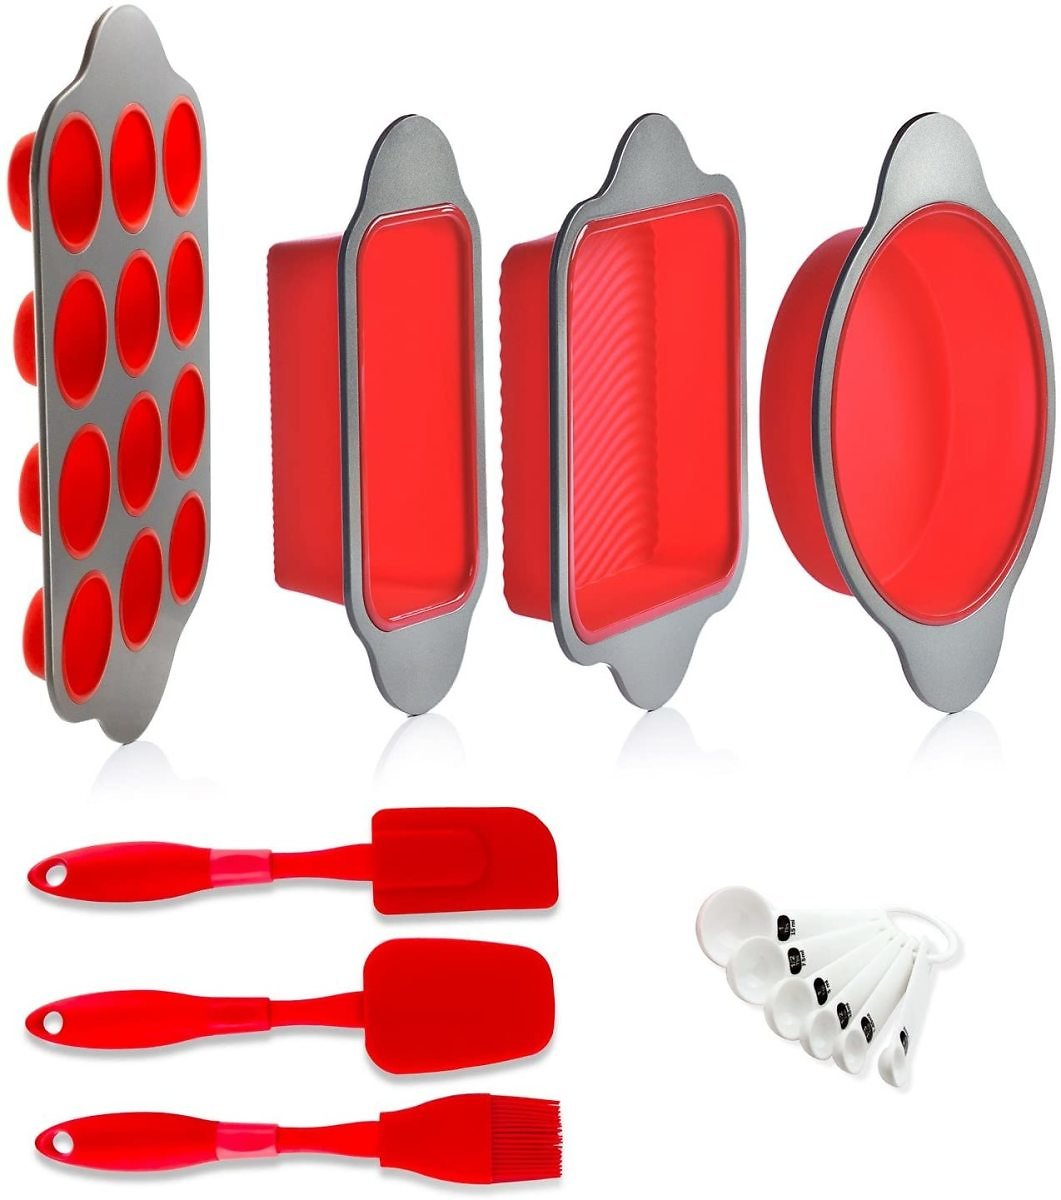 Silicone Baking Molds, Pans and Utensils (Set of 13) By Boxiki Kitchen